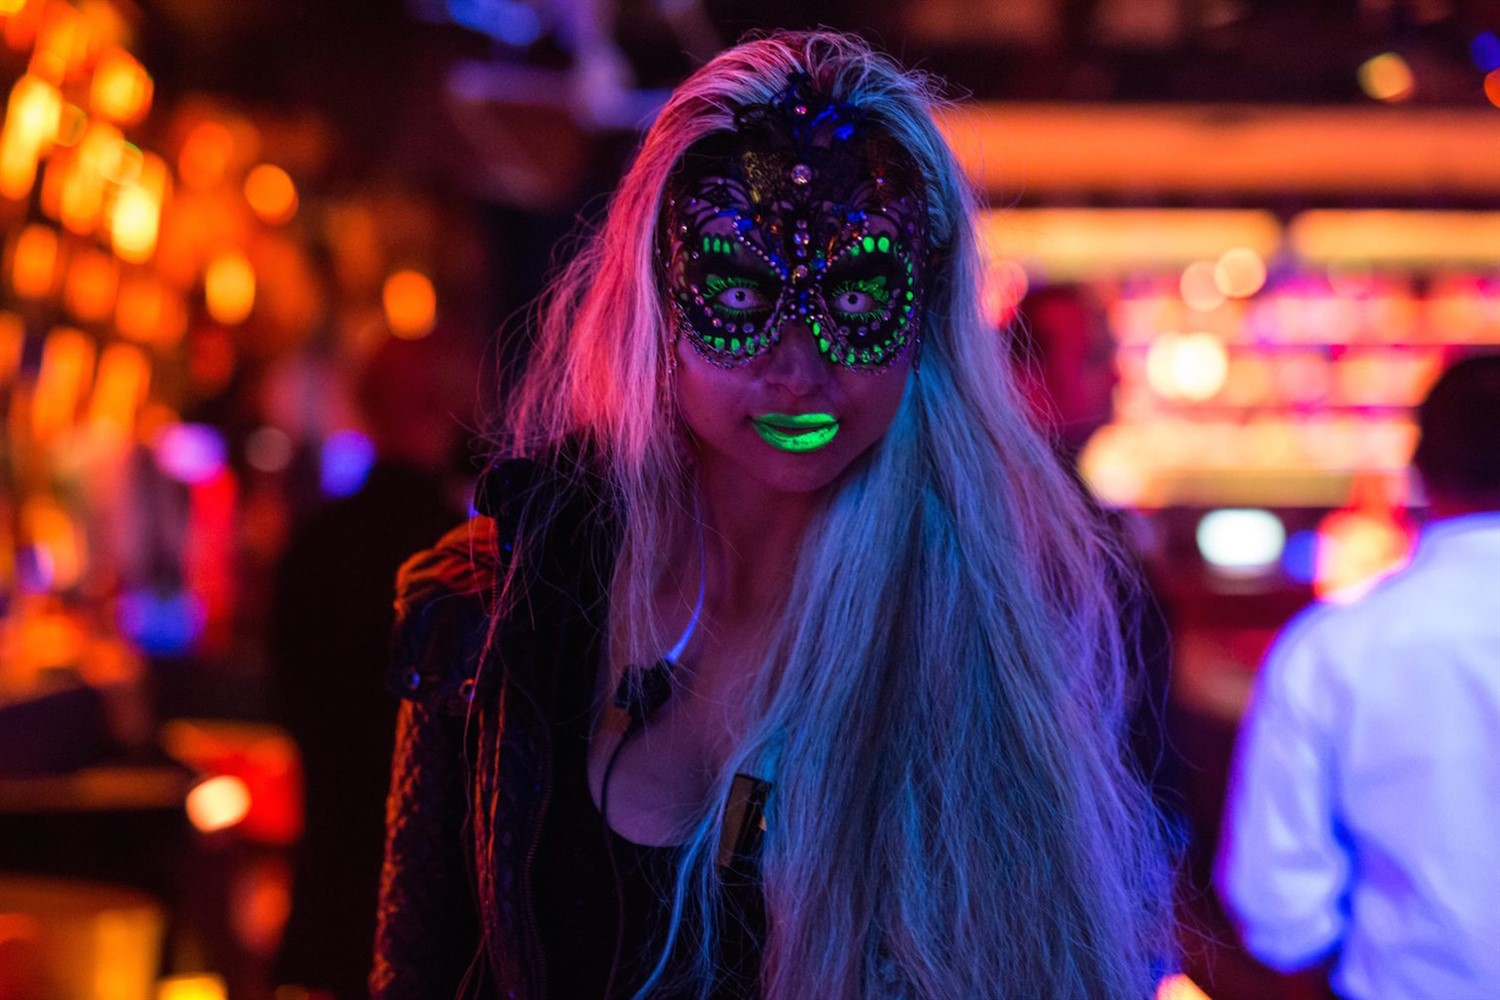 Stereo Garden NY Halloween Party 2019 (18 to party) Stereo Garden NY Halloween Party 2019 (18 to party) on Oct 31, 22:00@Stereo Garden - Buy tickets and Get information on GametightNY